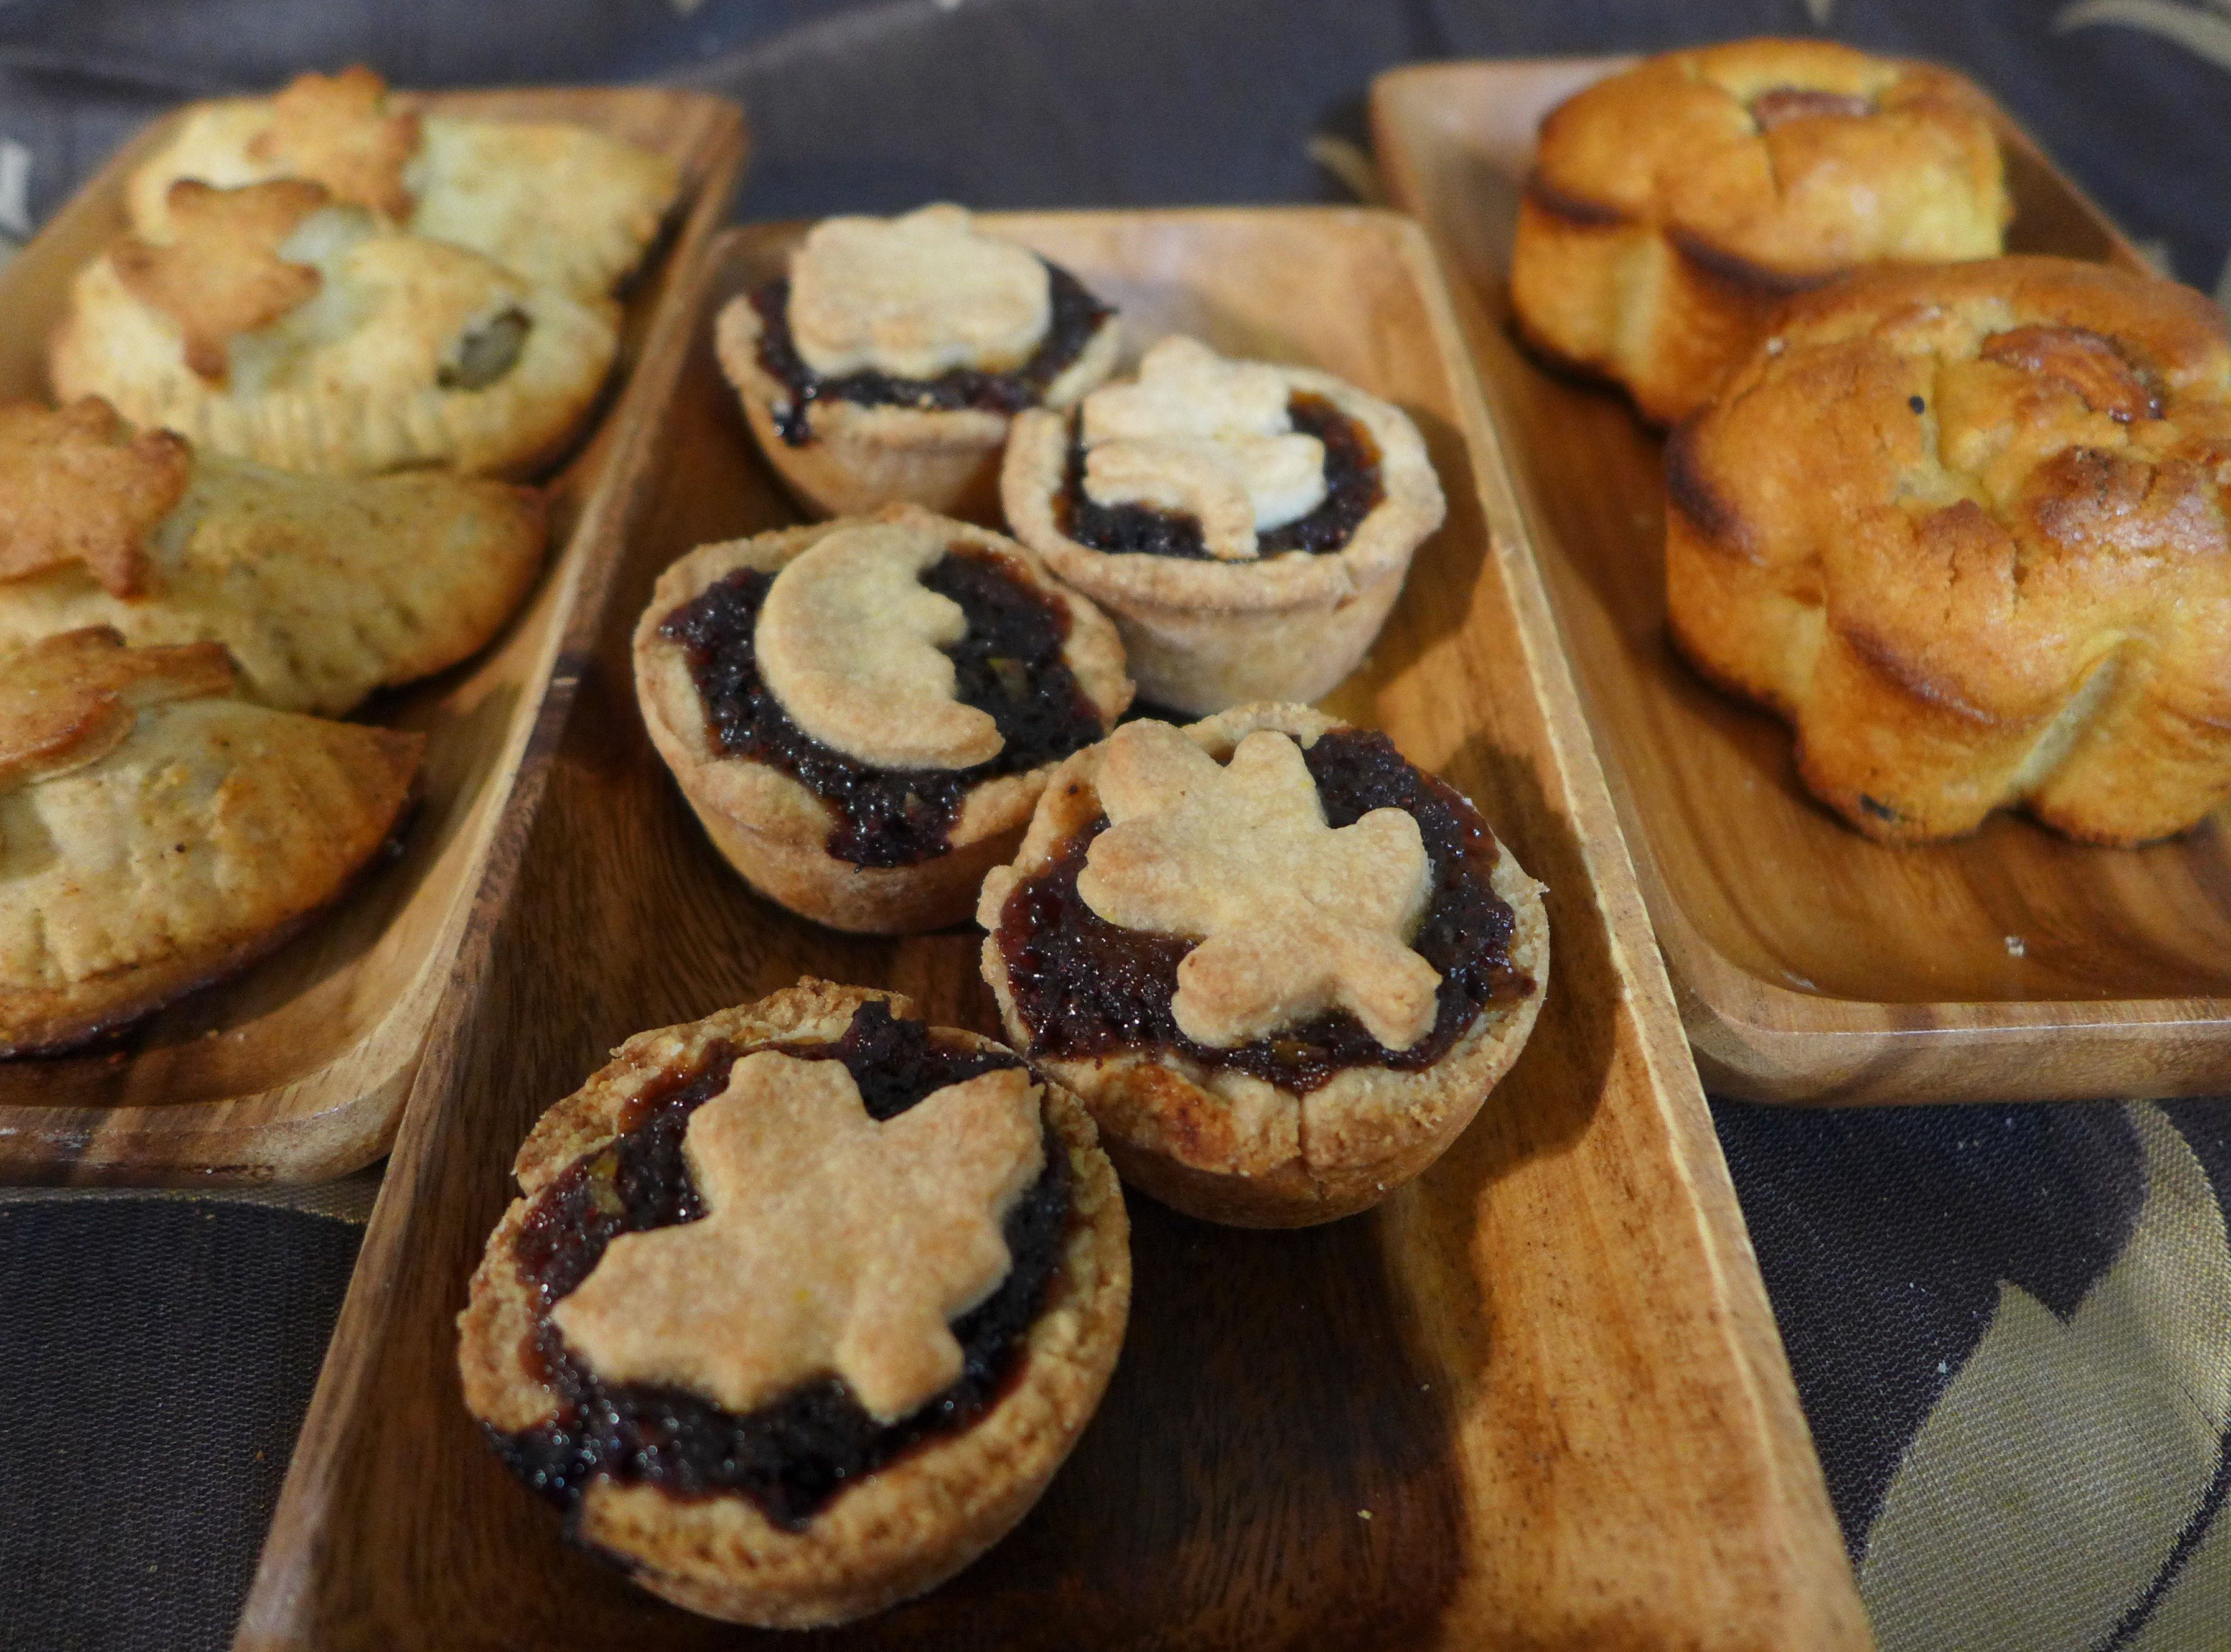 Kitchen Overlord Hobbit Week - Small Adventure Mincemeat Pies